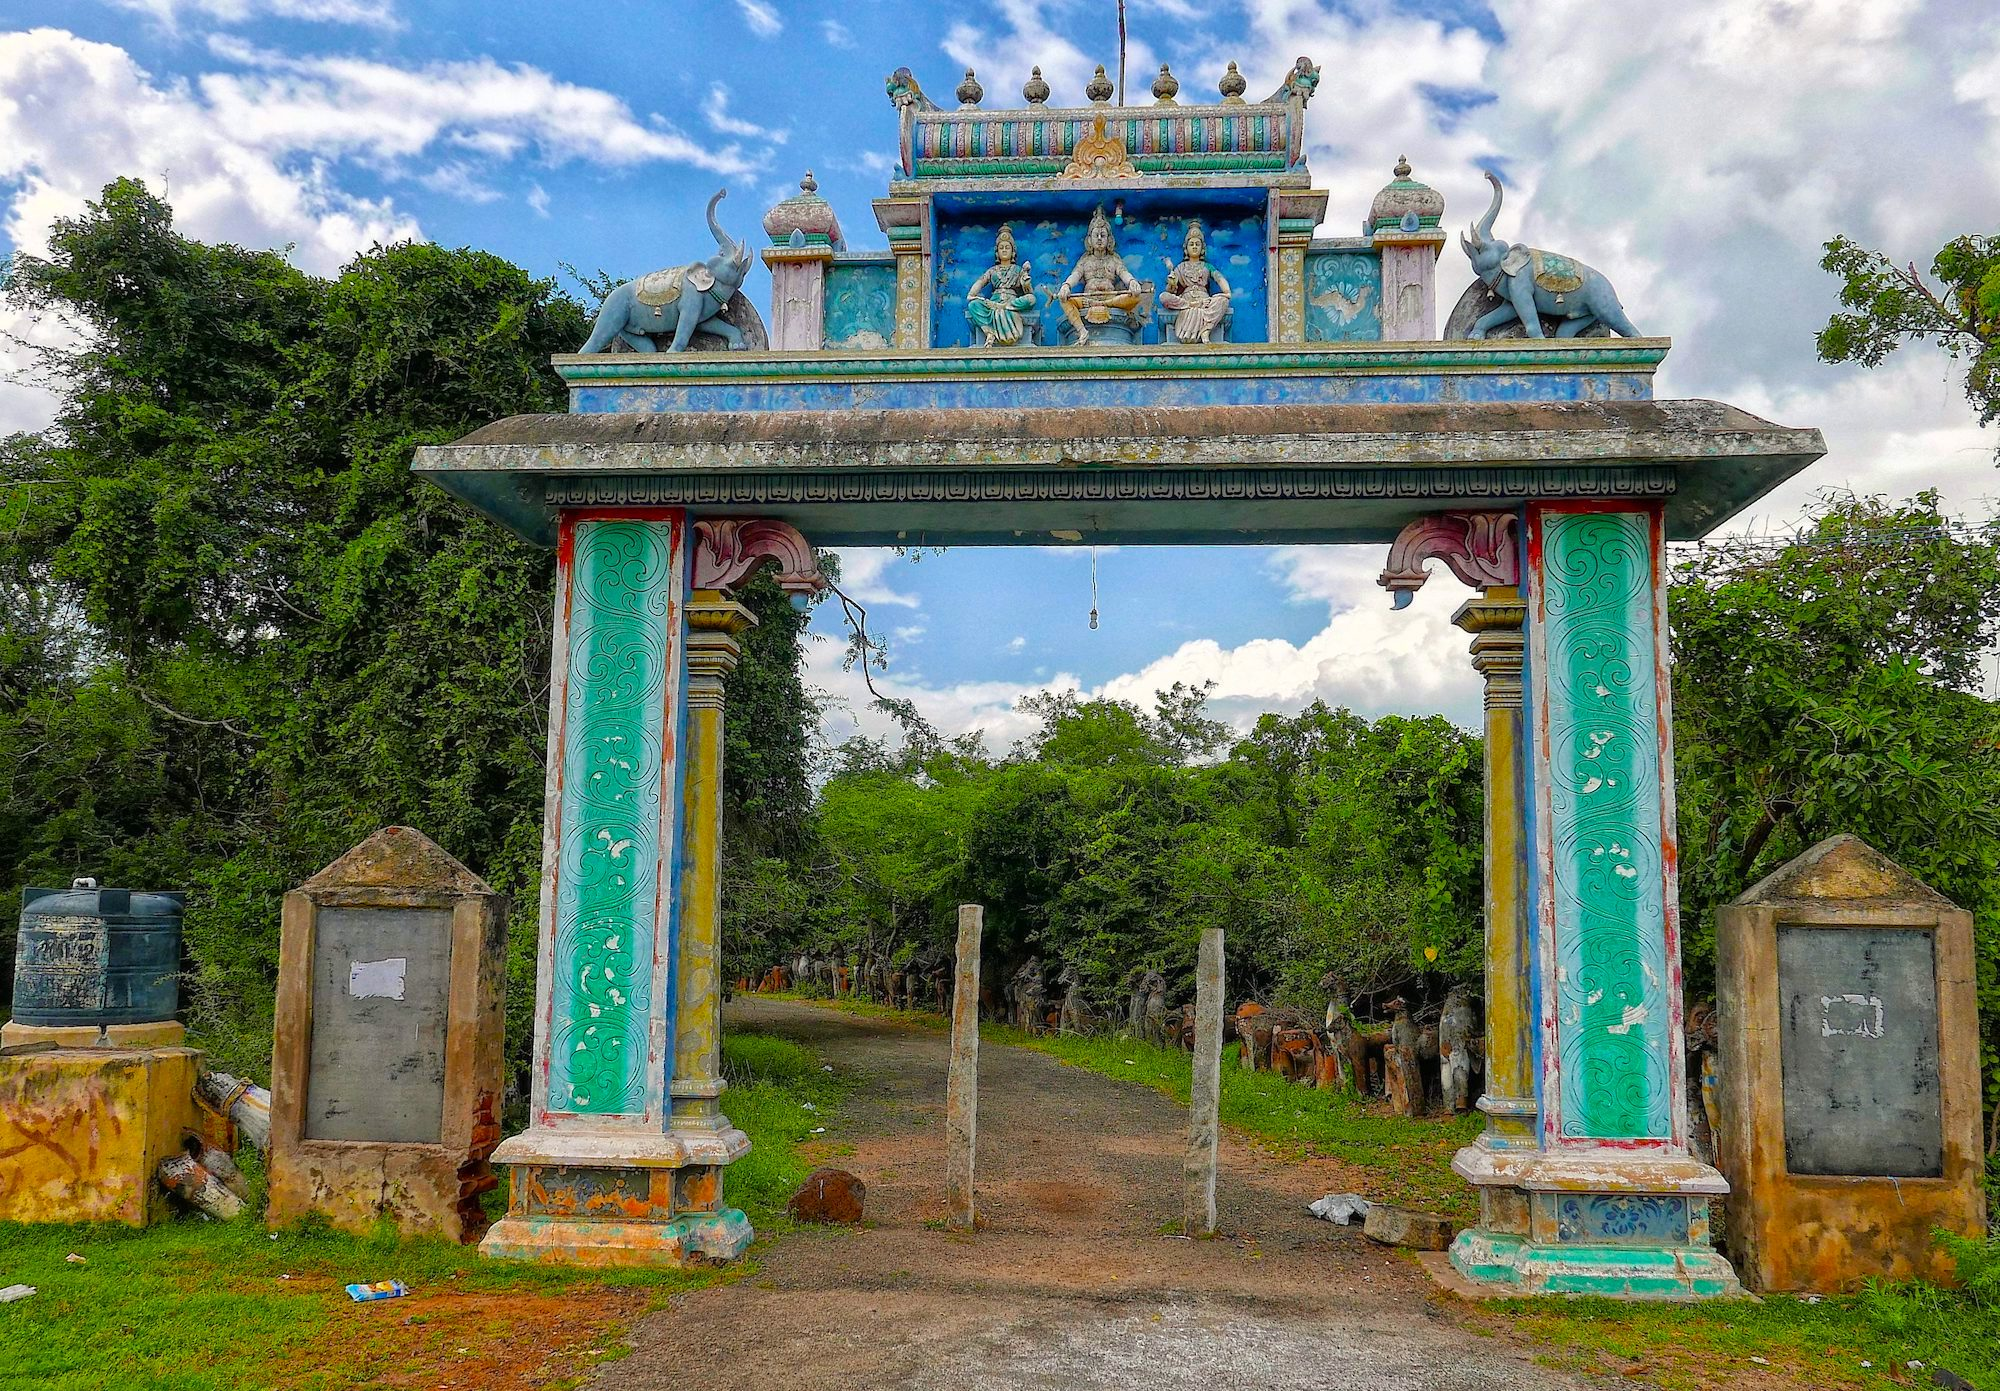 Entrance to Ayyanar shrine in Ellangudipatti Tamil nadu India